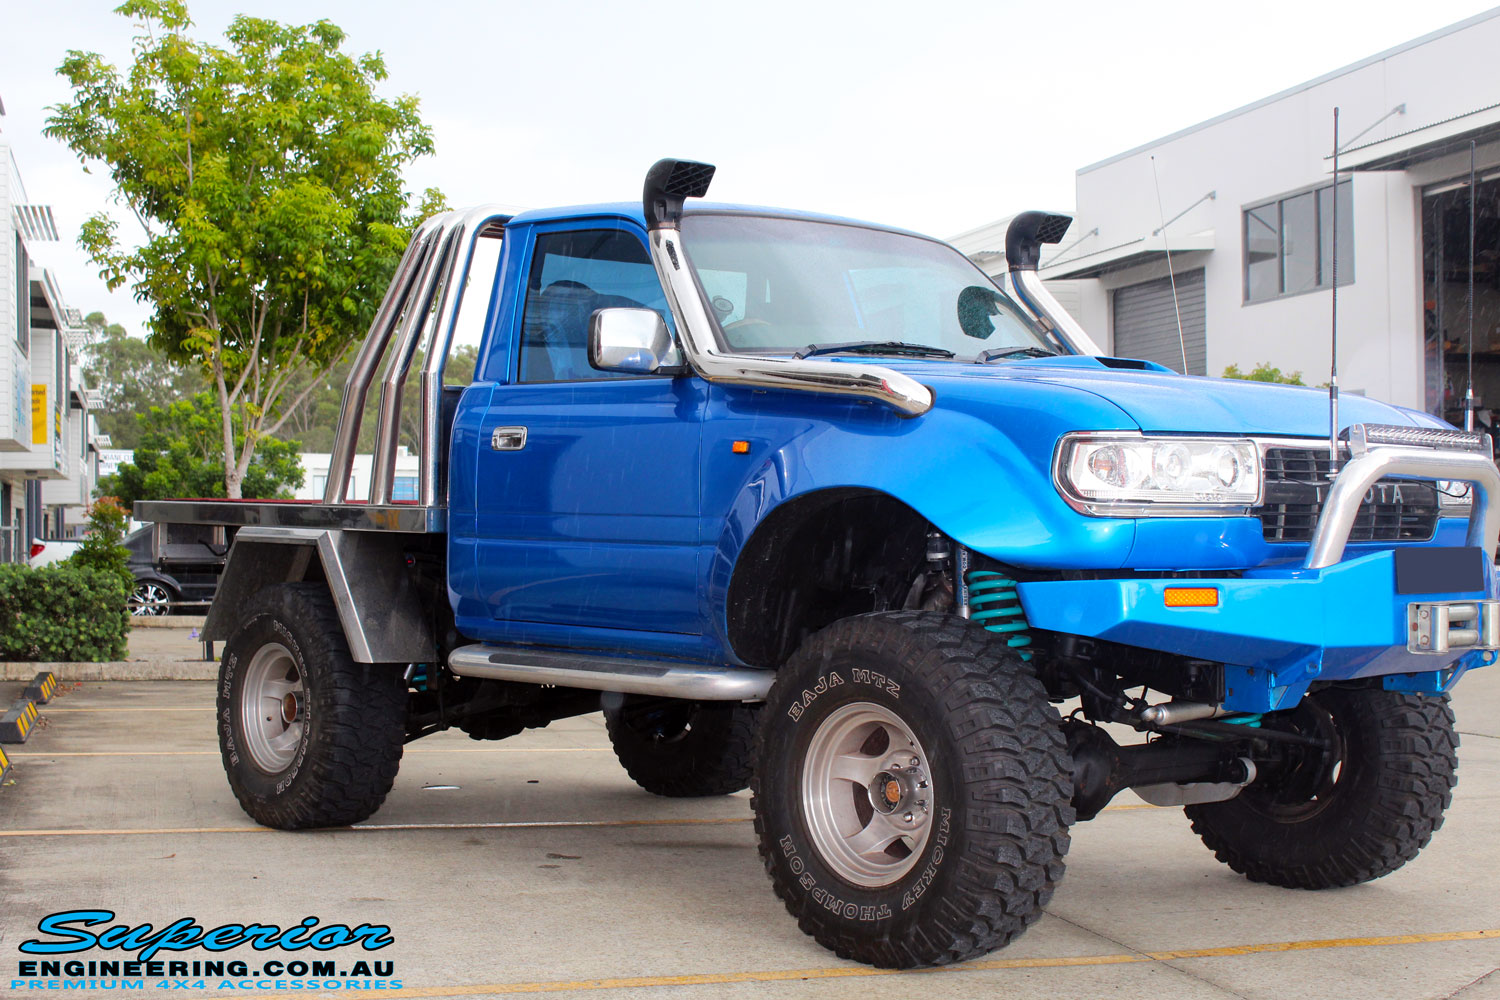 """Left front side view of a Blue Toyota 80 Series Landcruiser Ute Chop after fitment of a Airbag Man 4"""" Inch Coil Air Lift Kit"""